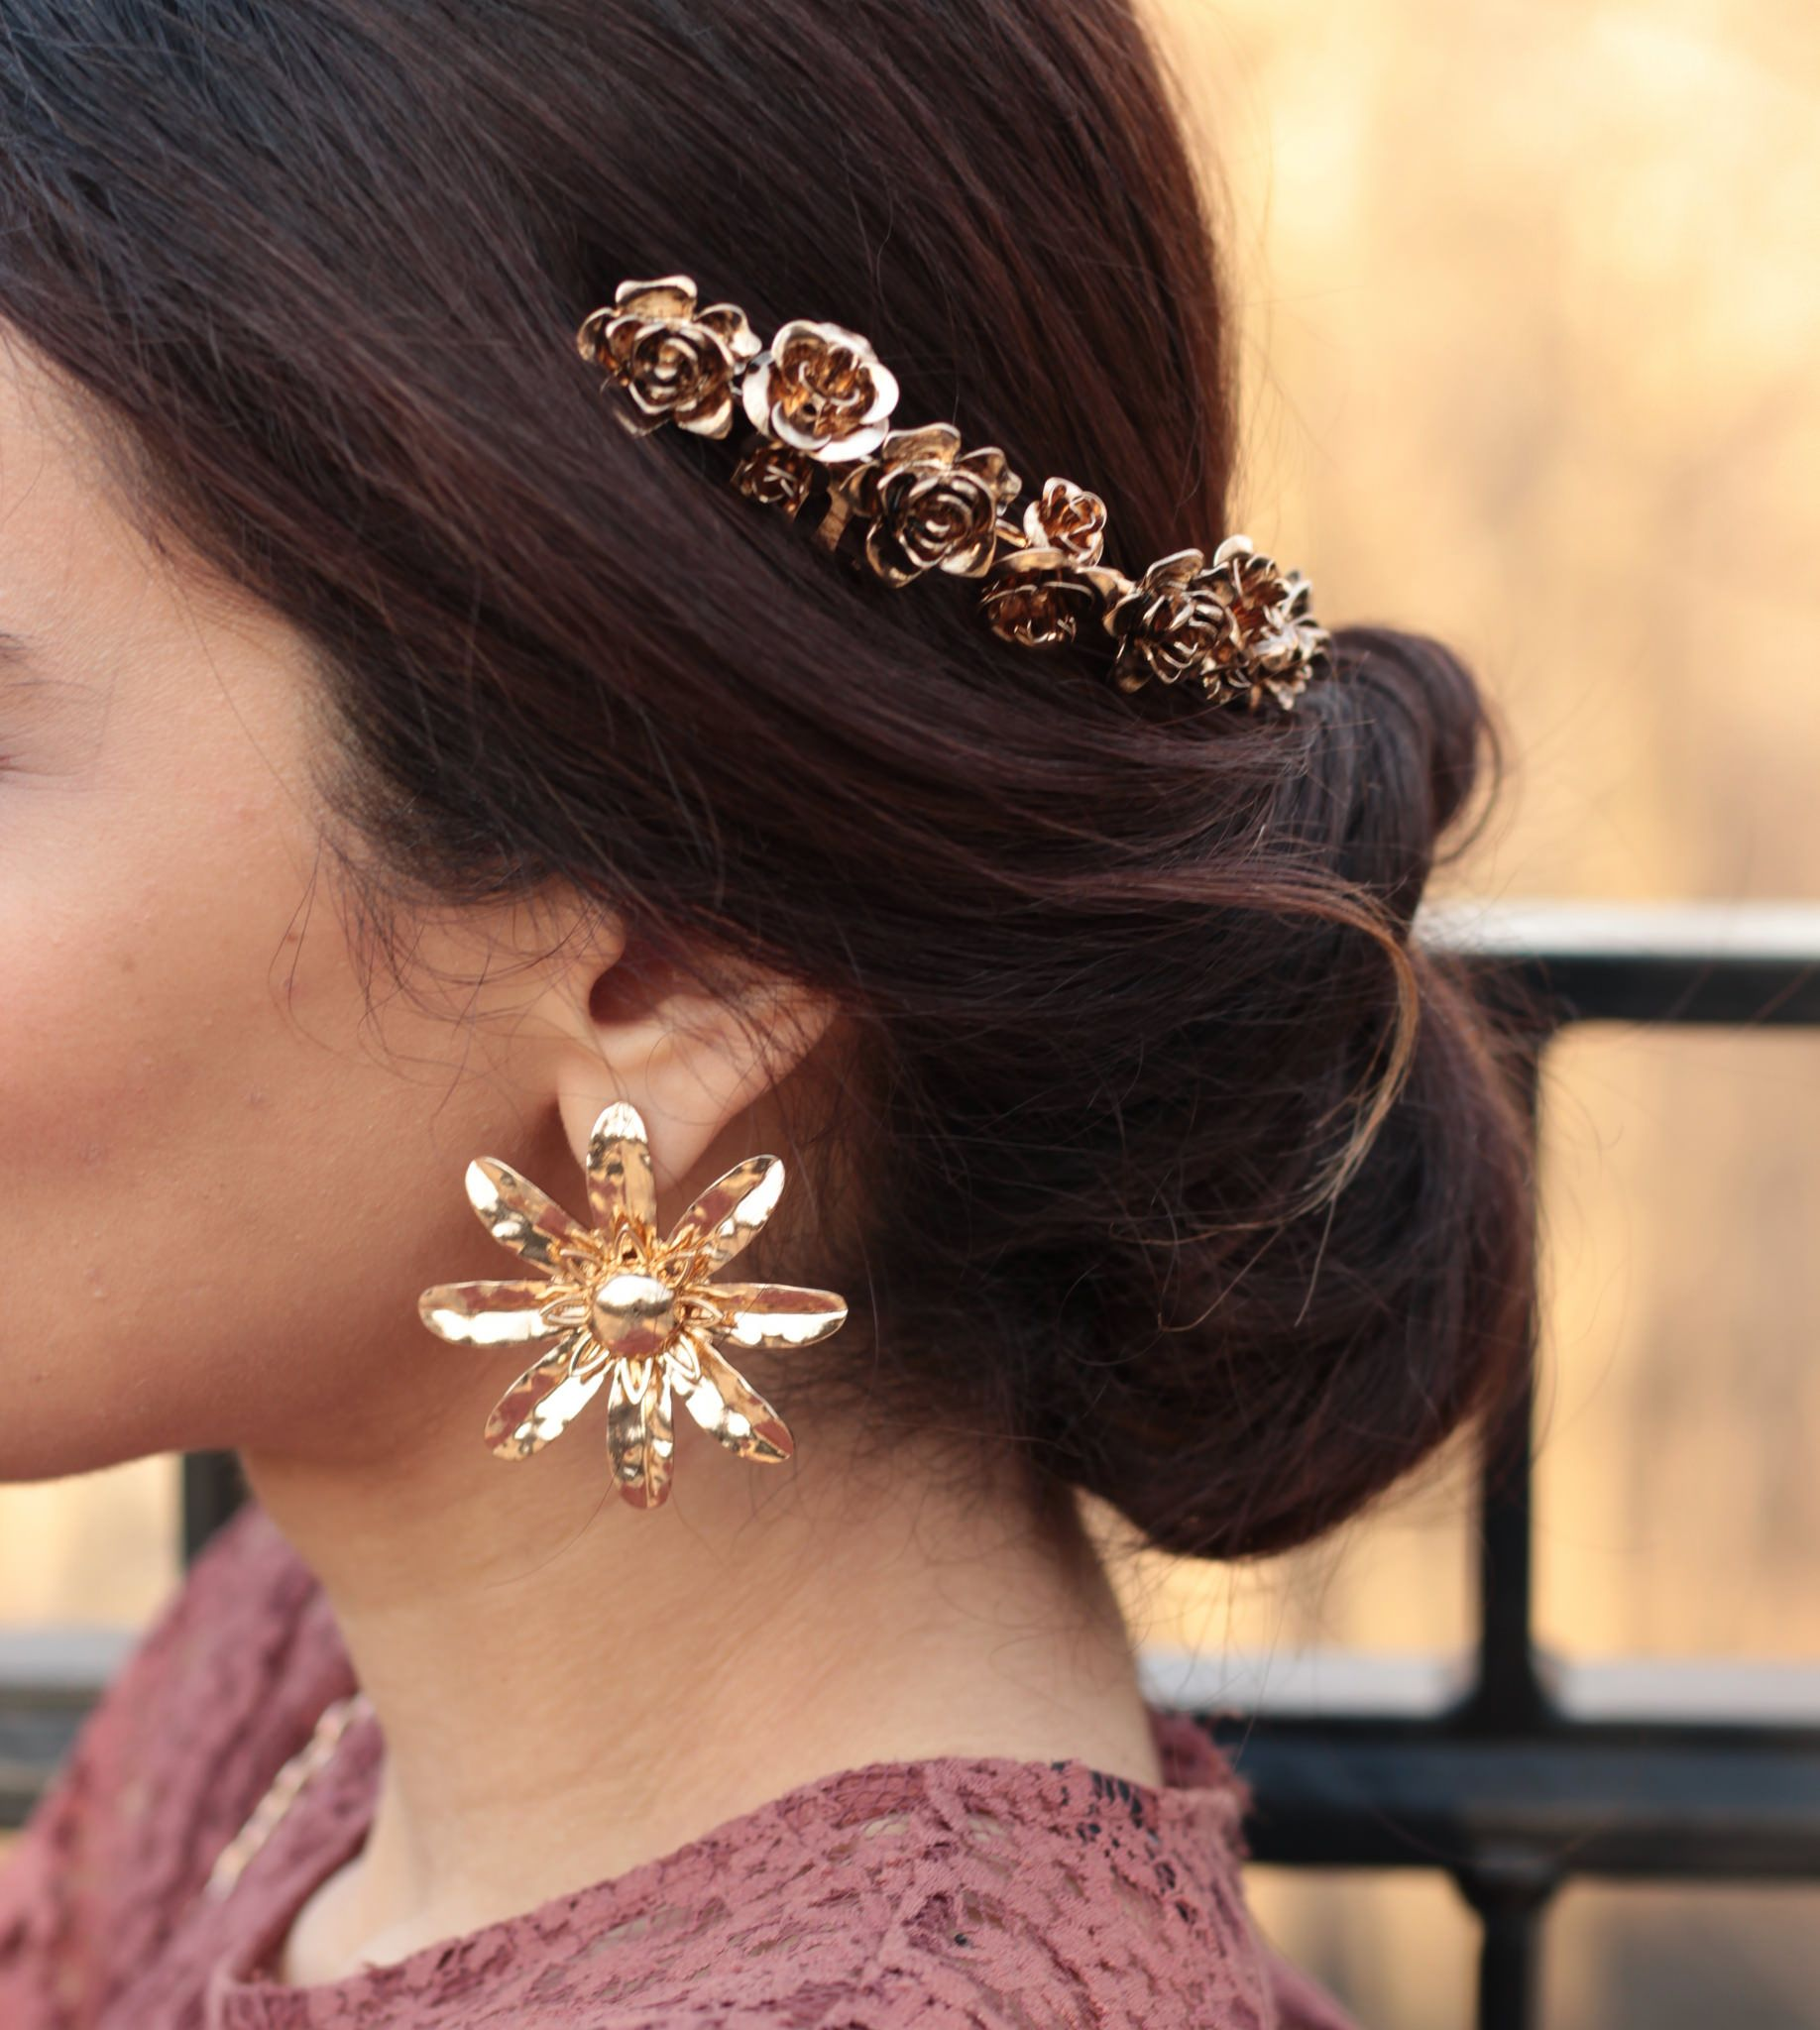 Boho Accessories -gold flower earrings and headpiece  – MODE DELINA